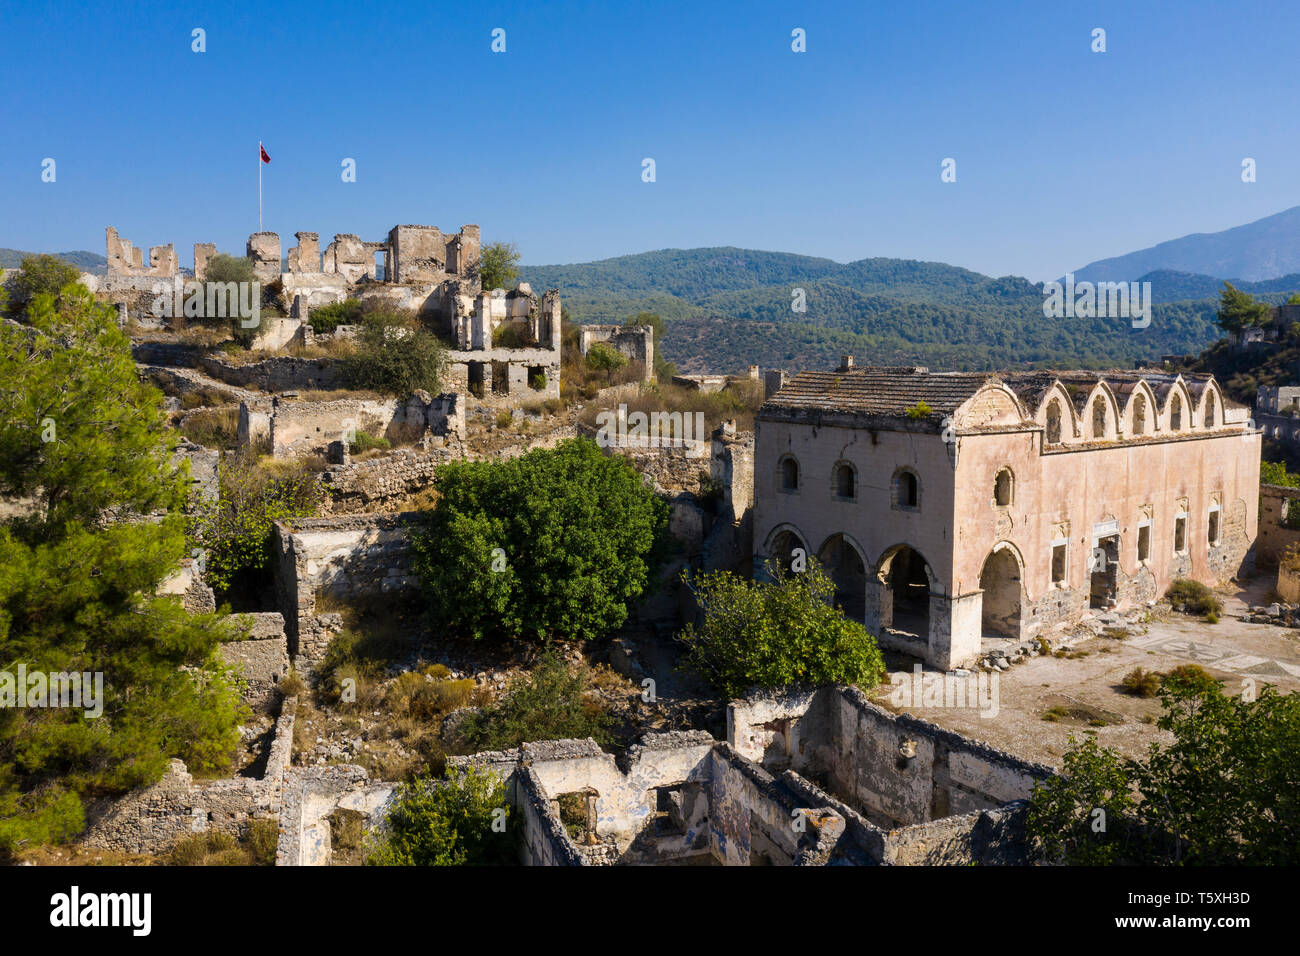 Turkey, Fethiye, Kayakoy (Mugla) Ghost Town, a former greek colony and now an abandoned town and open air museum - Stock Image